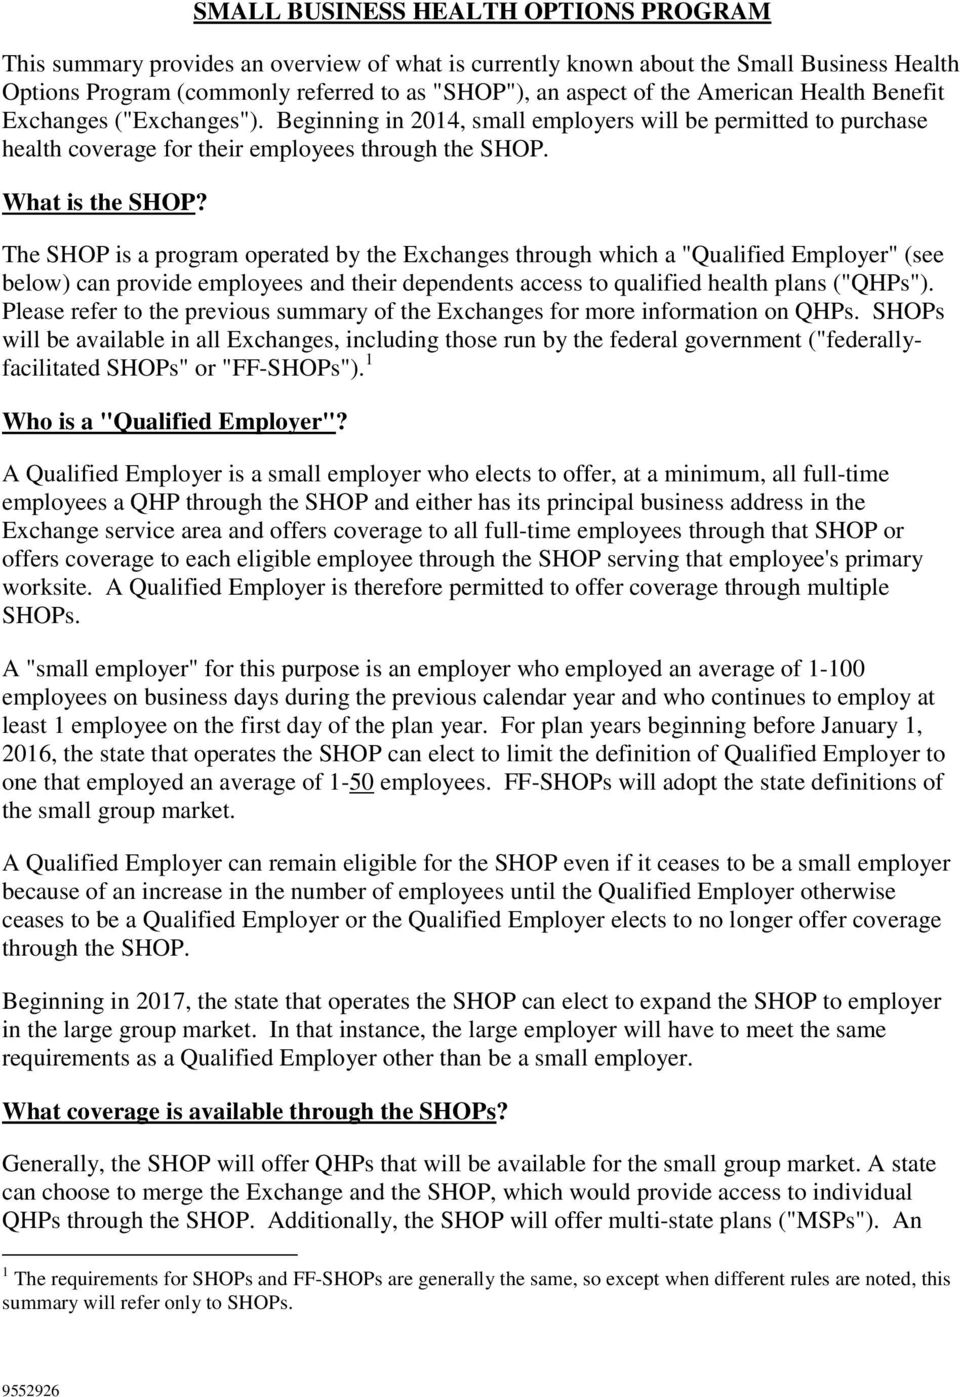 "The SHOP is a program operated by the Exchanges through which a ""Qualified Employer"" (see below) can provide employees and their dependents access to qualified health plans (""QHPs"")."